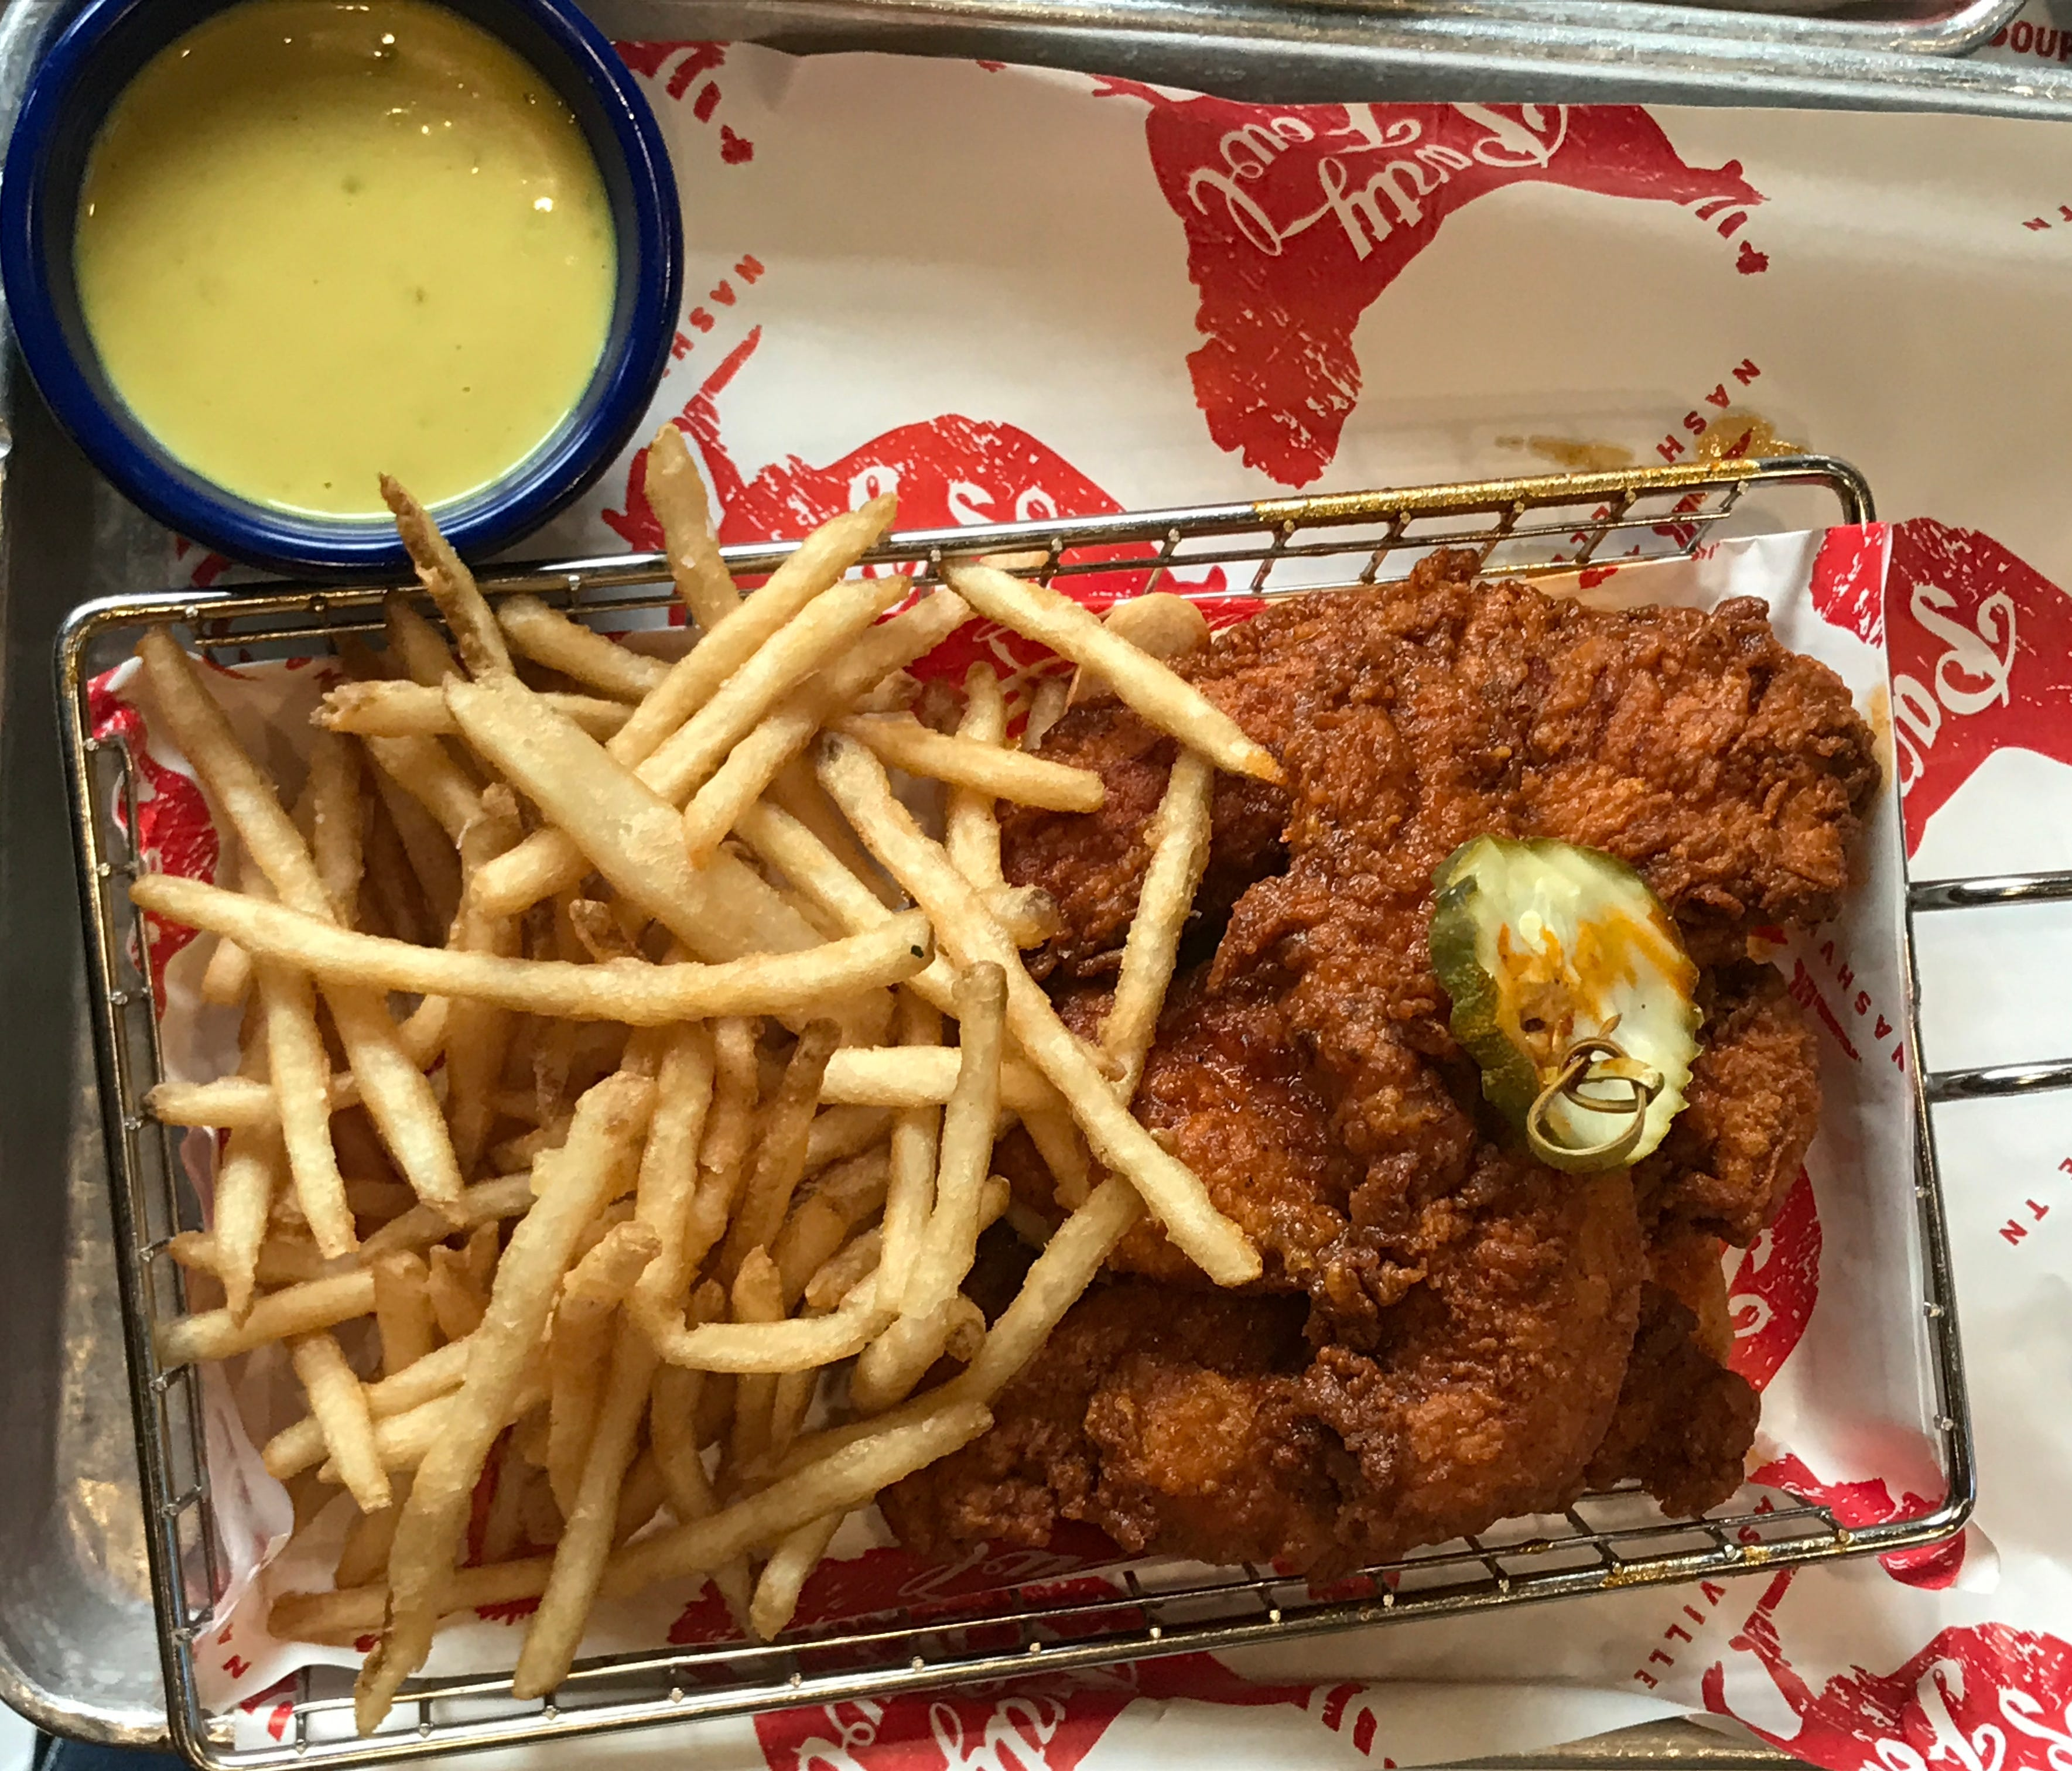 Yet another way to try a variation on classic Nashville Hot Chicken is in the form of tenders with mustard dipping sauce.